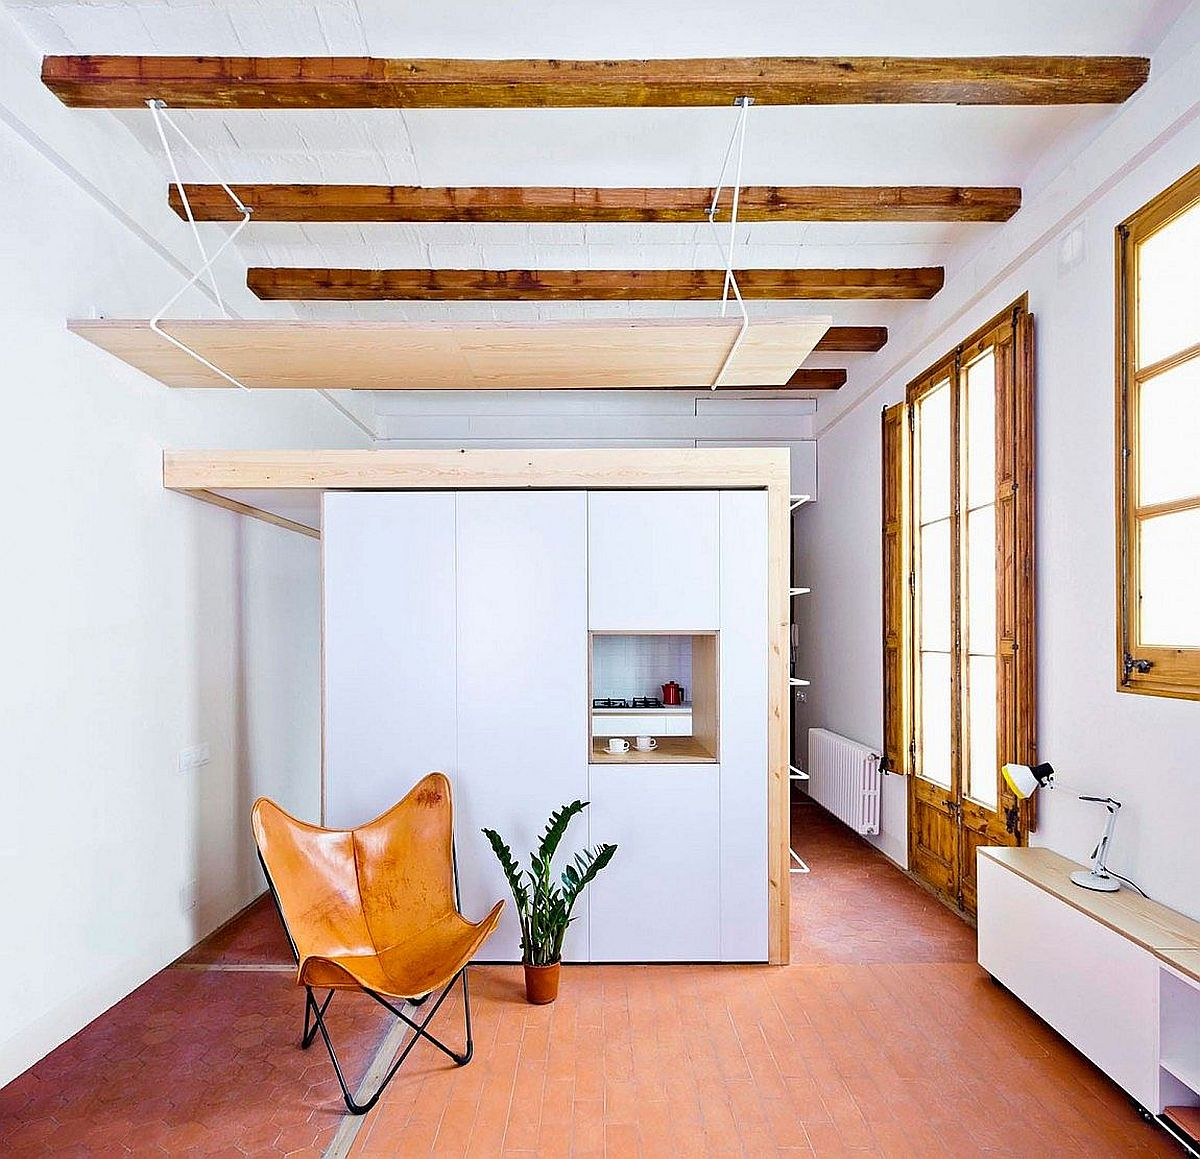 This tiny apartment kitchen has a mezzanine level of its own